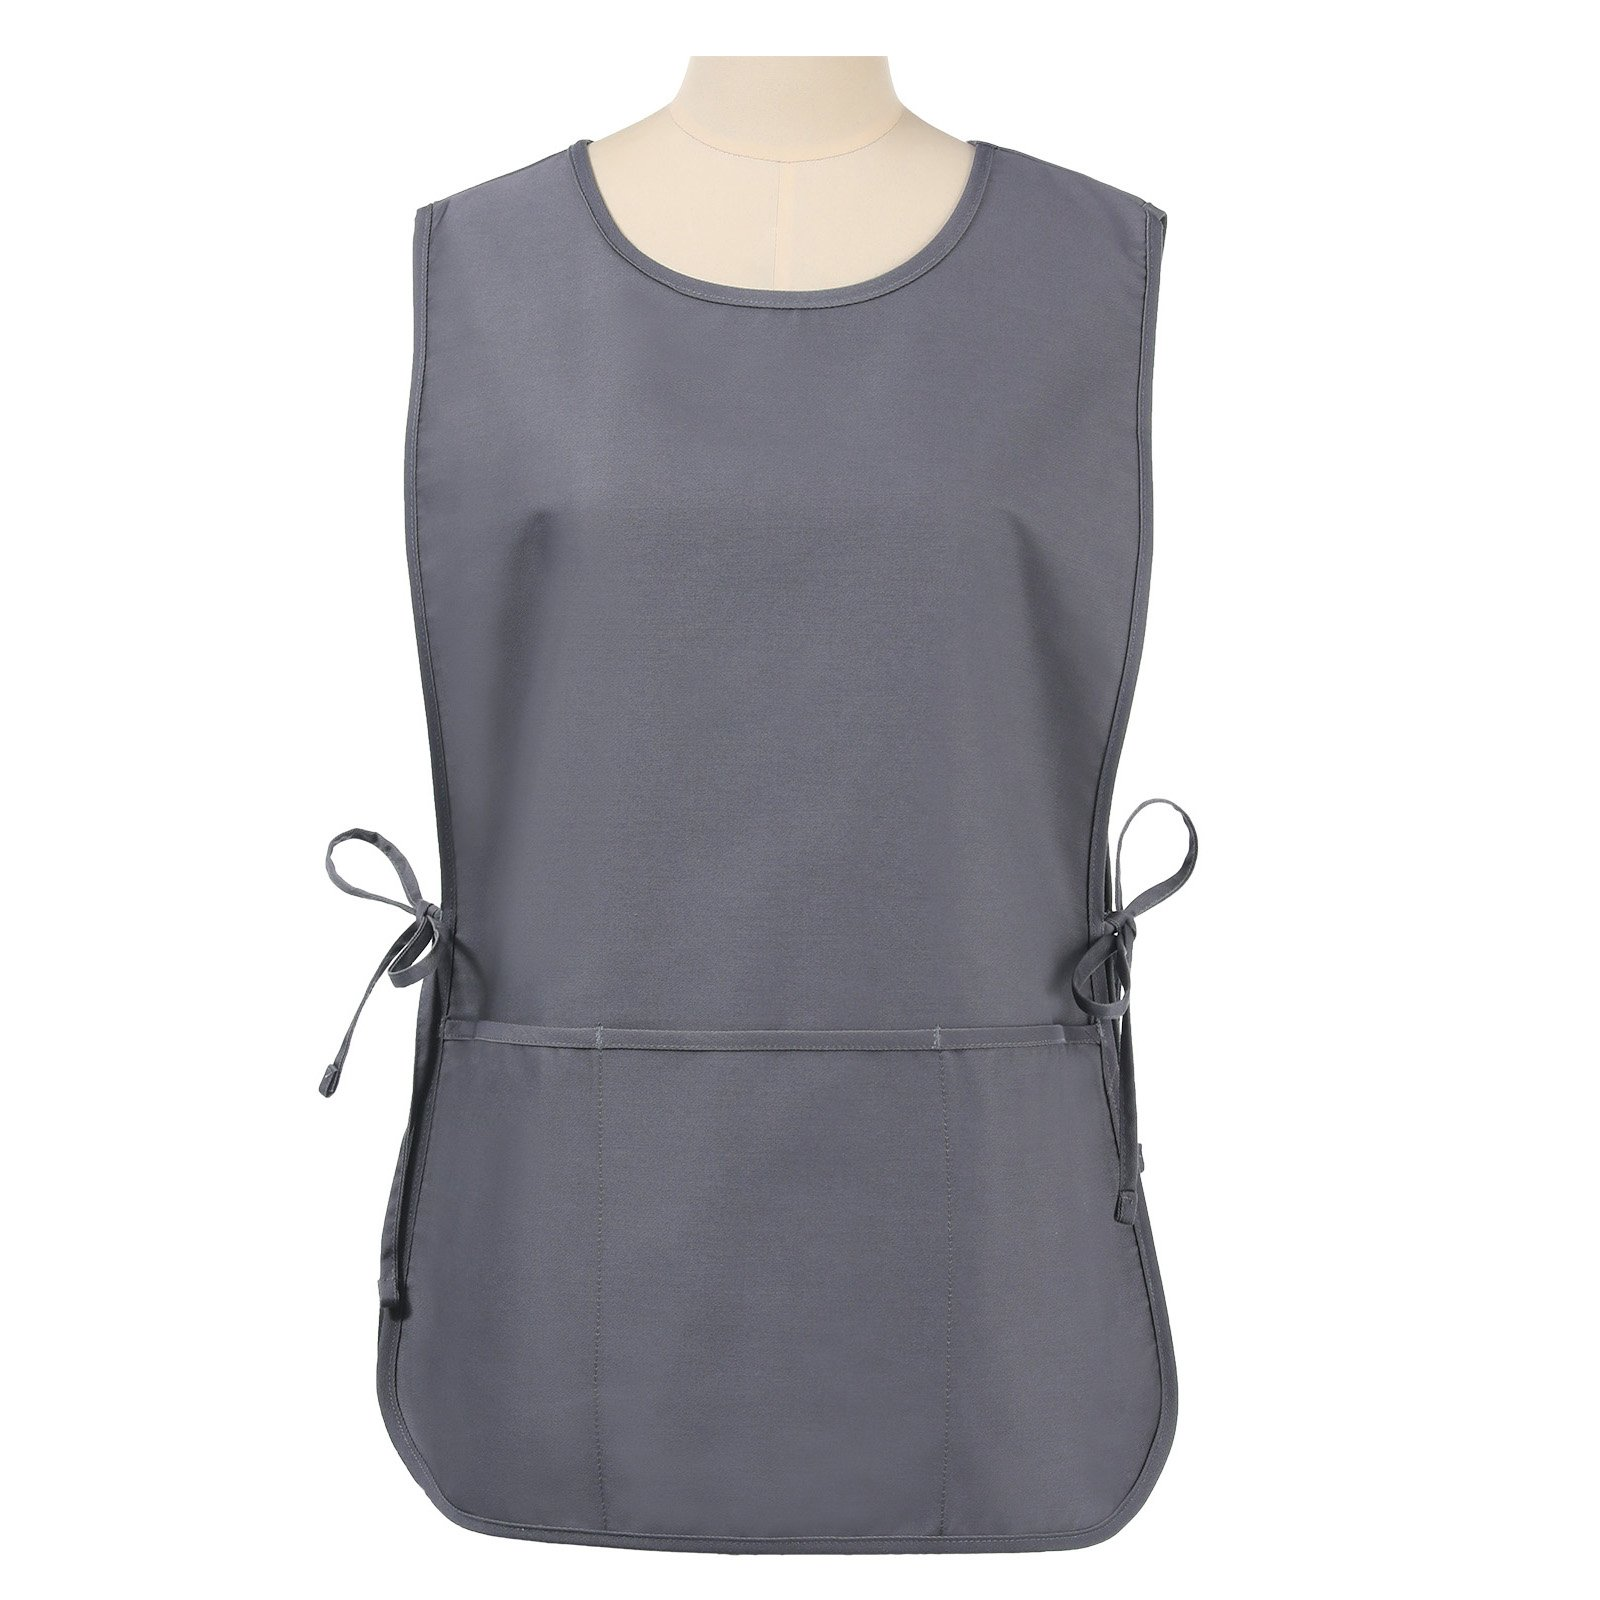 VEEYOO Chef Cobbler Apron with 3 Pockets, Polyester Cotton, Art Smock Aprons for Unisex Adult Men Women, Slate, Regular 20x28 inches